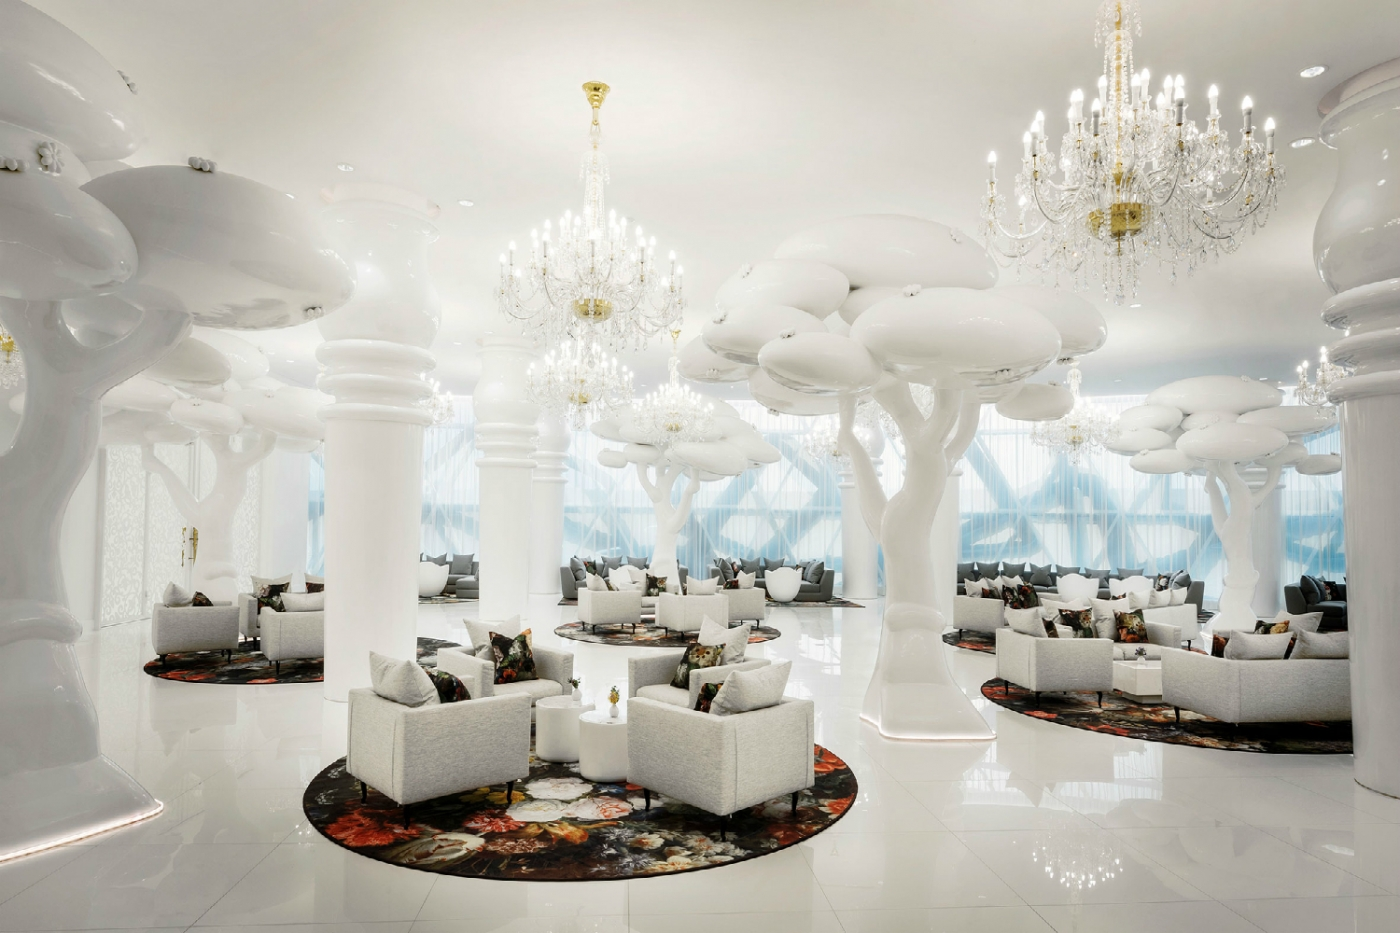 marcel wanders The Mondrian Doha: A Luxury Hotel Project by Marcel Wanders The Mondrian Doha A Luxury Hotel Project by Marcel Wanders featured 1400x933